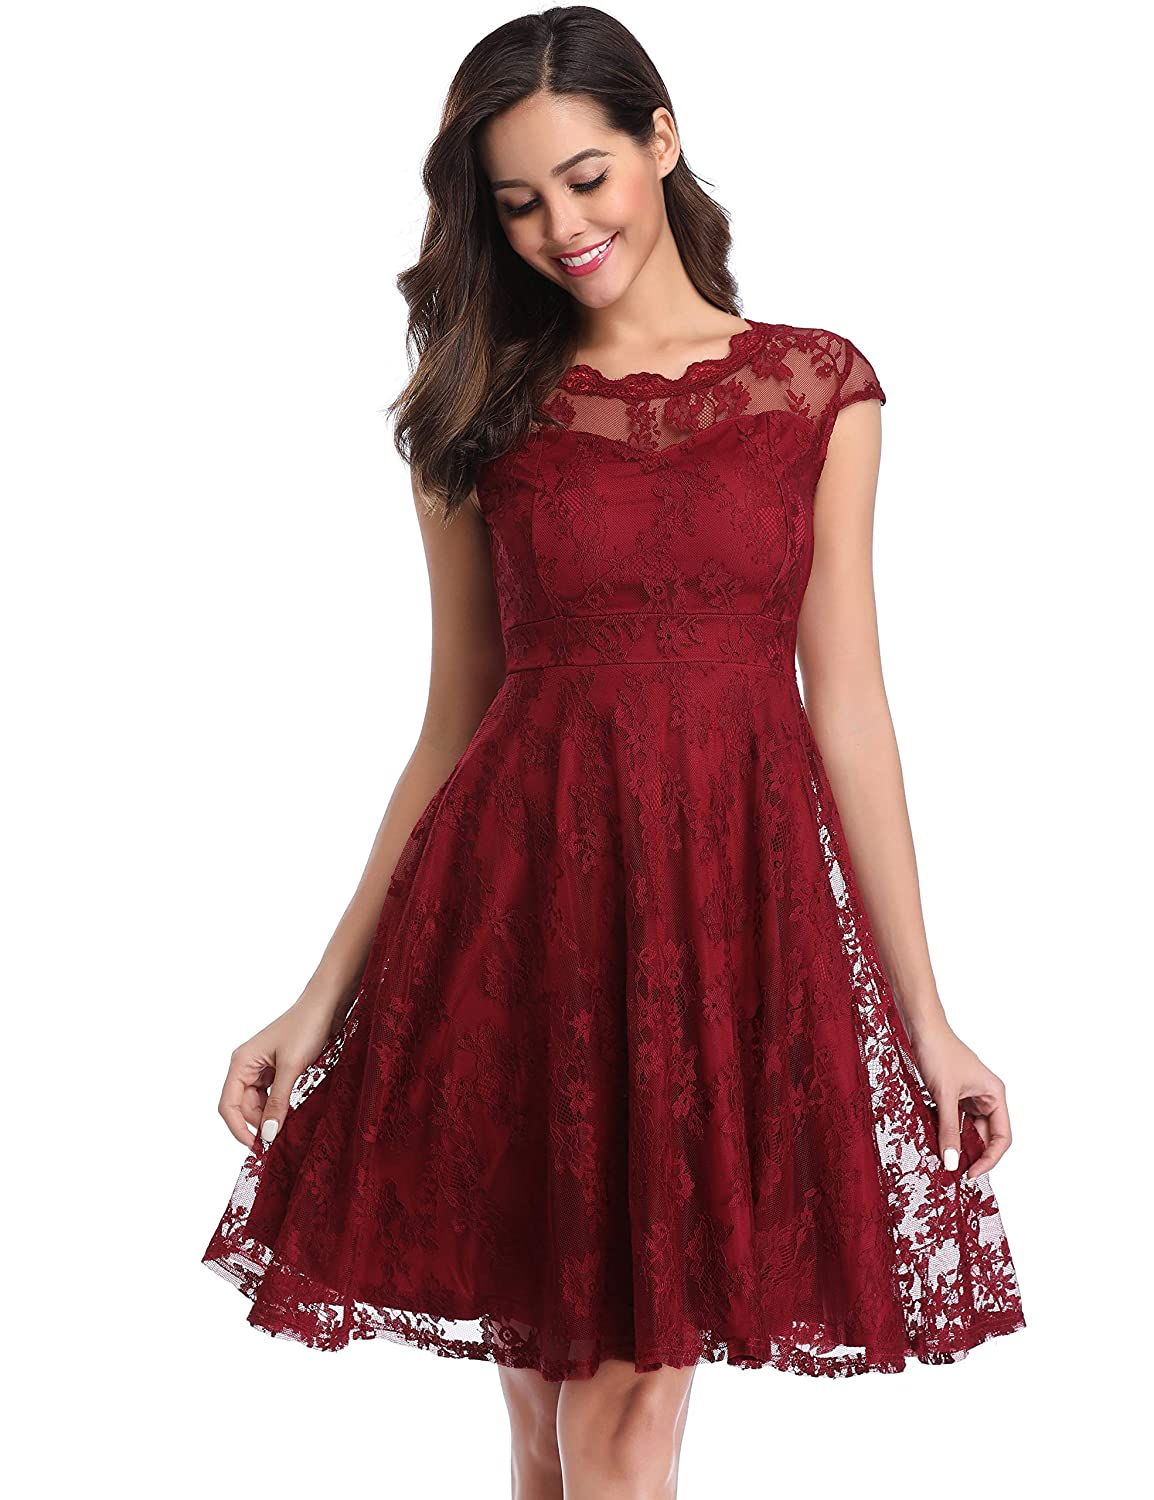 CHUNNA Womens Vintage Floral Lace Cap Sleeve Fit Flare Elegant Cocktail Party Dress